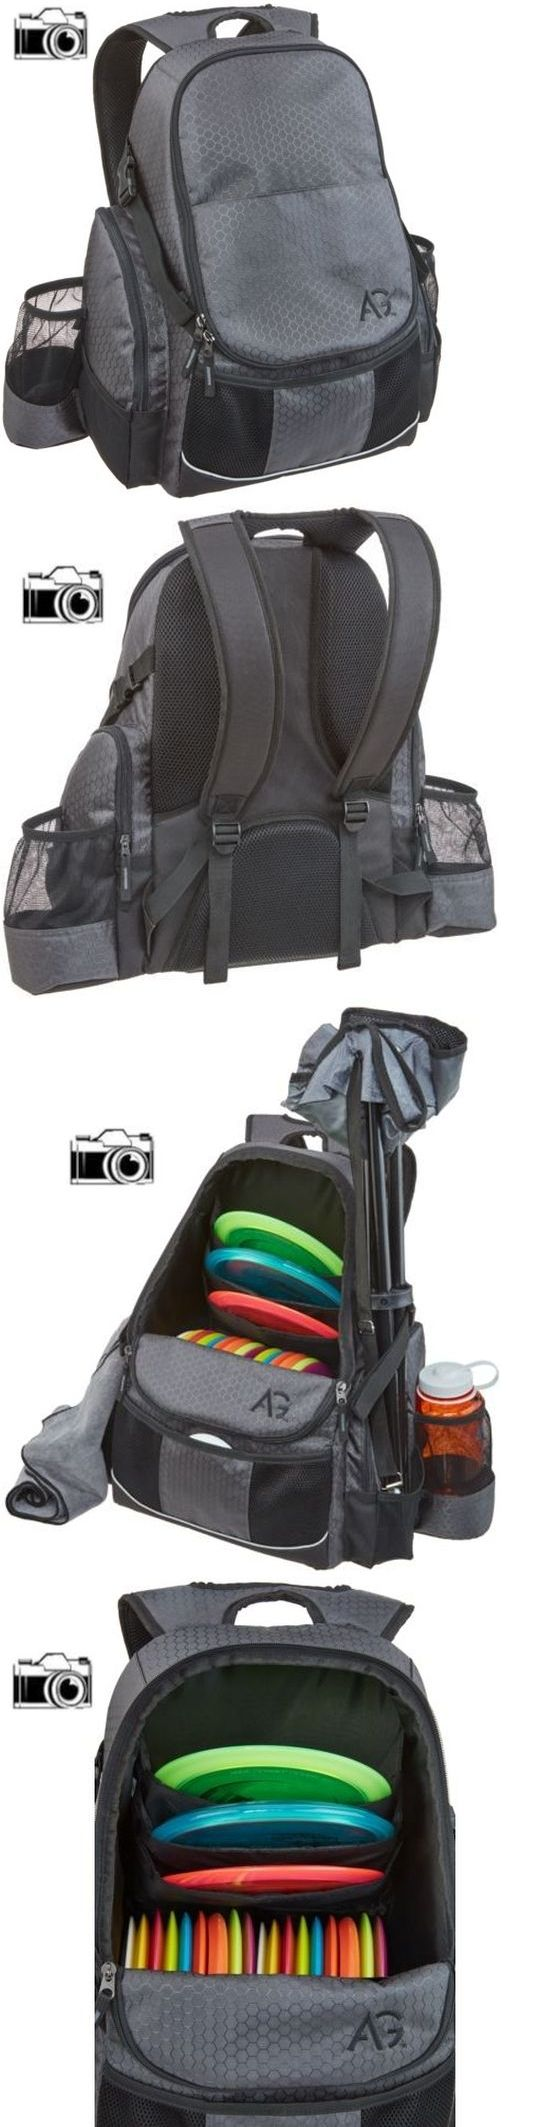 Disc Golf 20851: New Gray And Black Disc Golf Backpack Holds 21+ Discs Deluxe Frisbee Bag Ultimate -> BUY IT NOW ONLY: $40.85 on eBay!